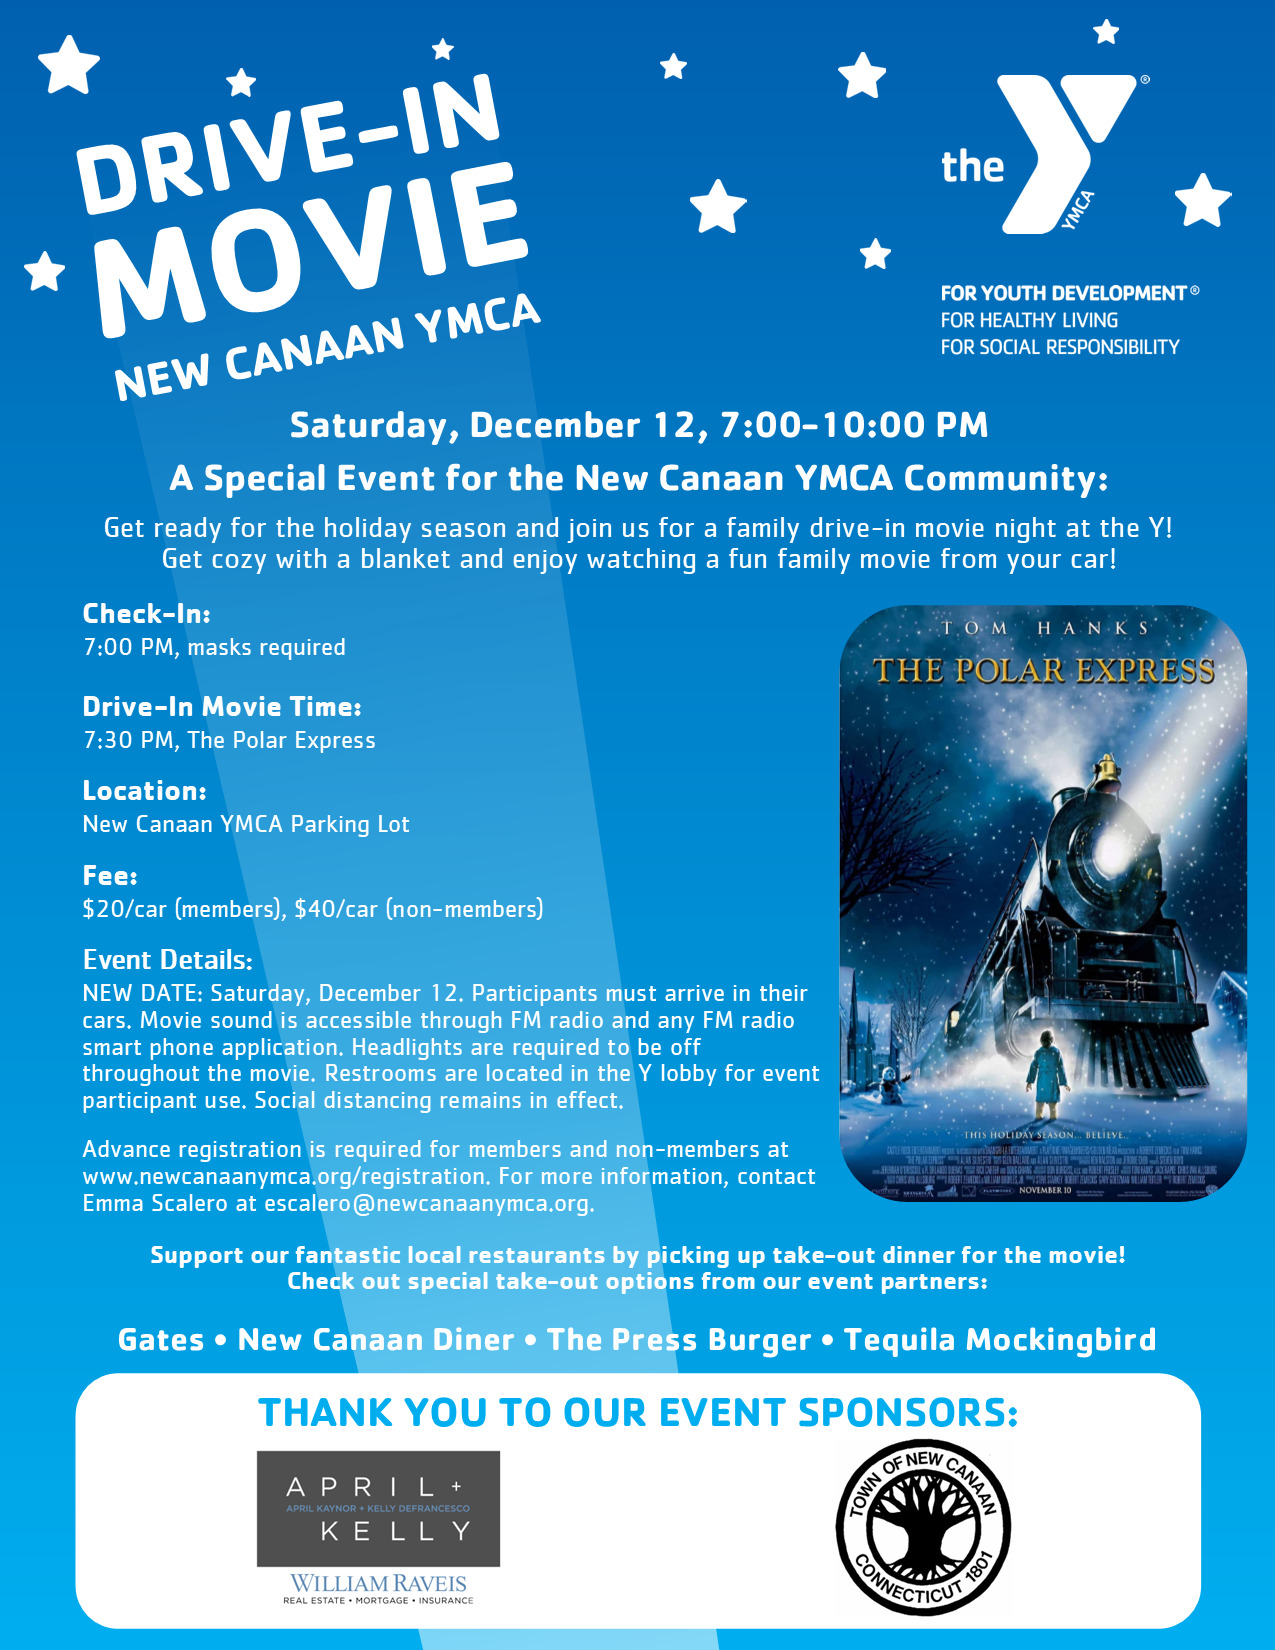 new canaan ymca drive in movie updated YliTC2.tmp